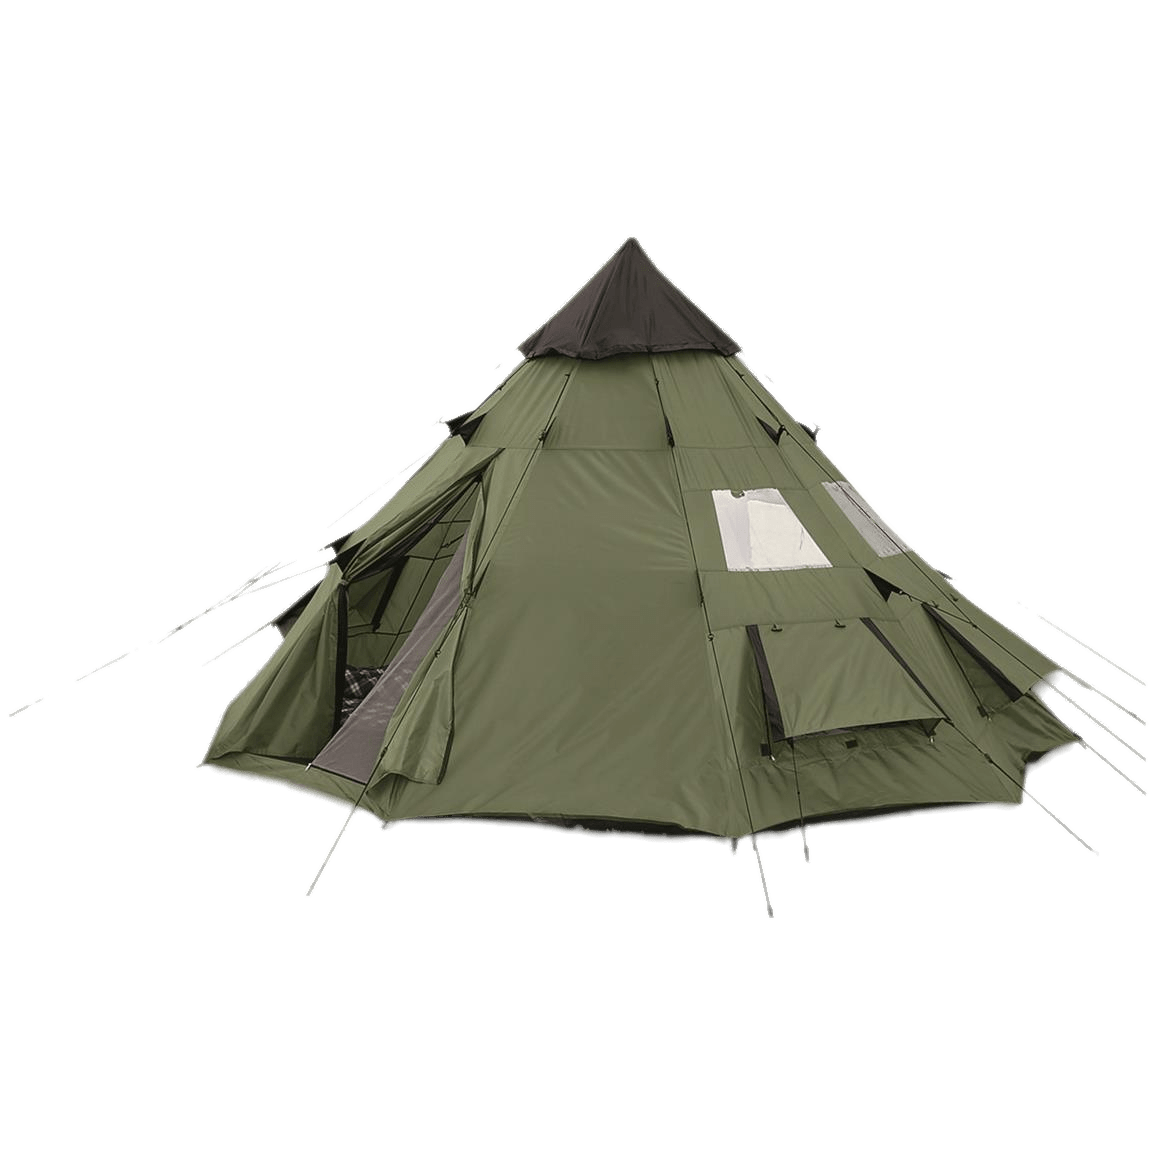 Camping tent png. Teepee transparent stickpng download